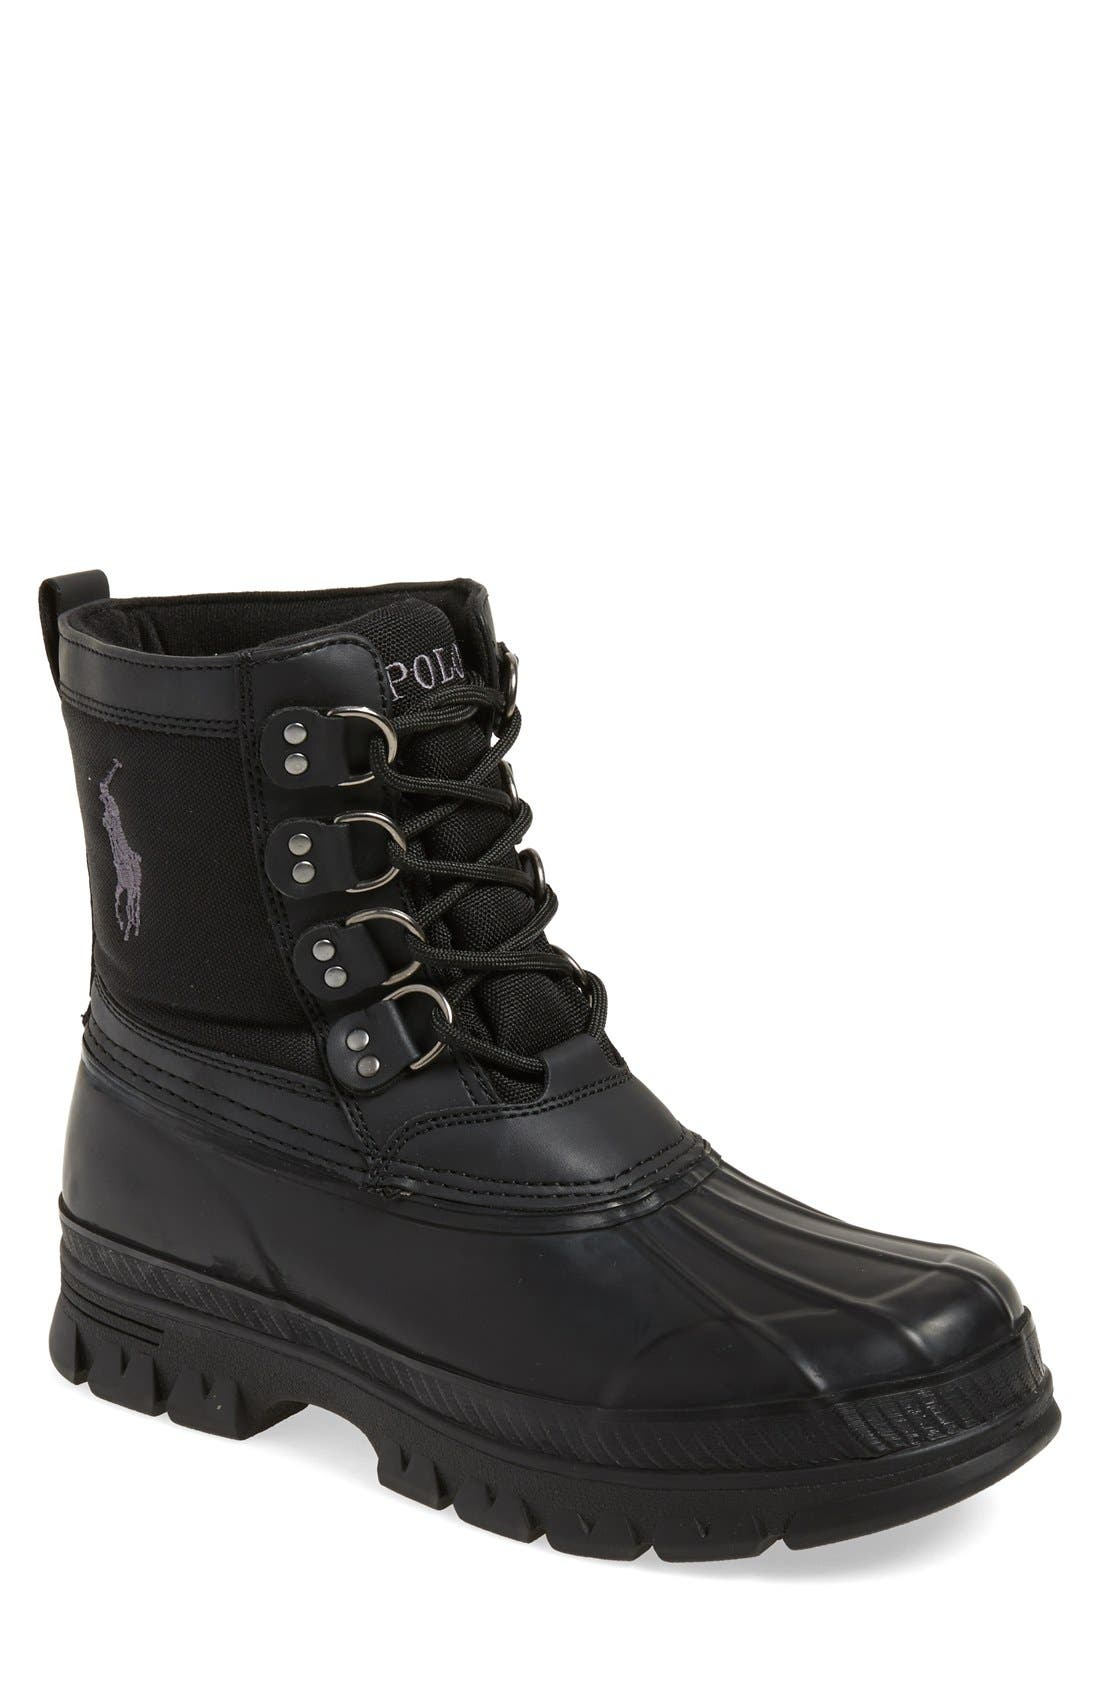 Main Image - Polo Ralph Lauren 'Crestwick' Tall Boot